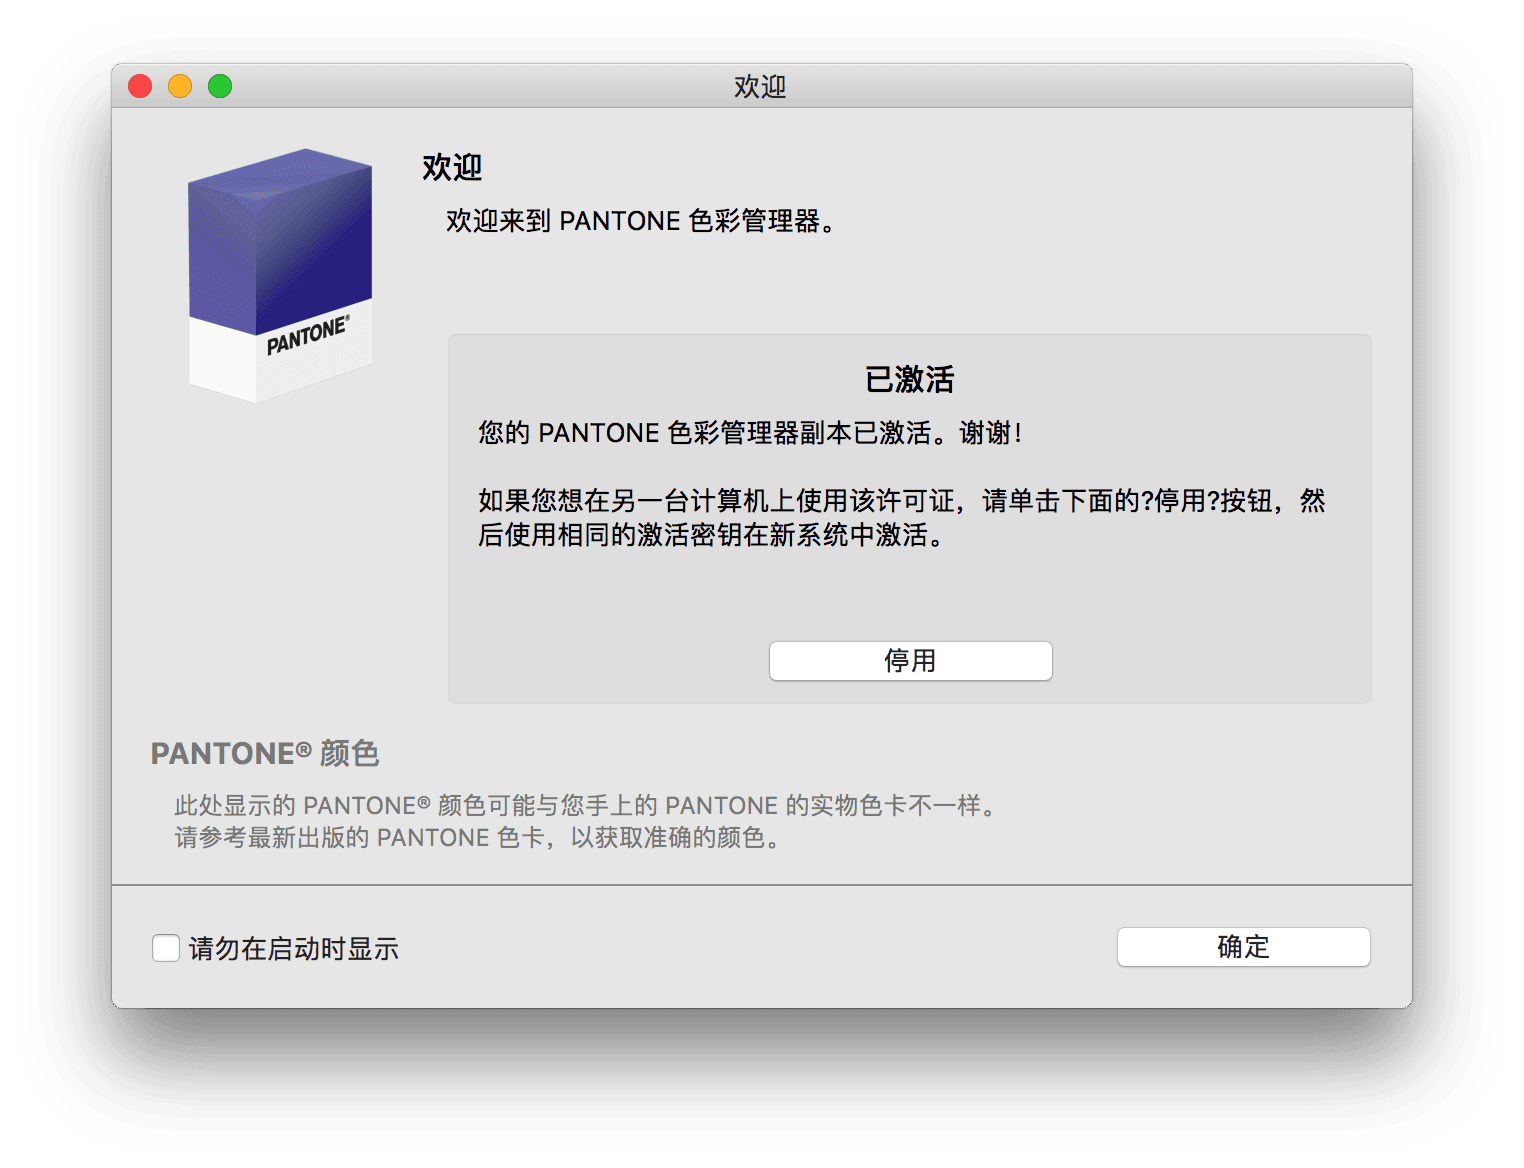 PANTONE Color Manager 2.2.0 色彩管理工具 素材管理 第2张